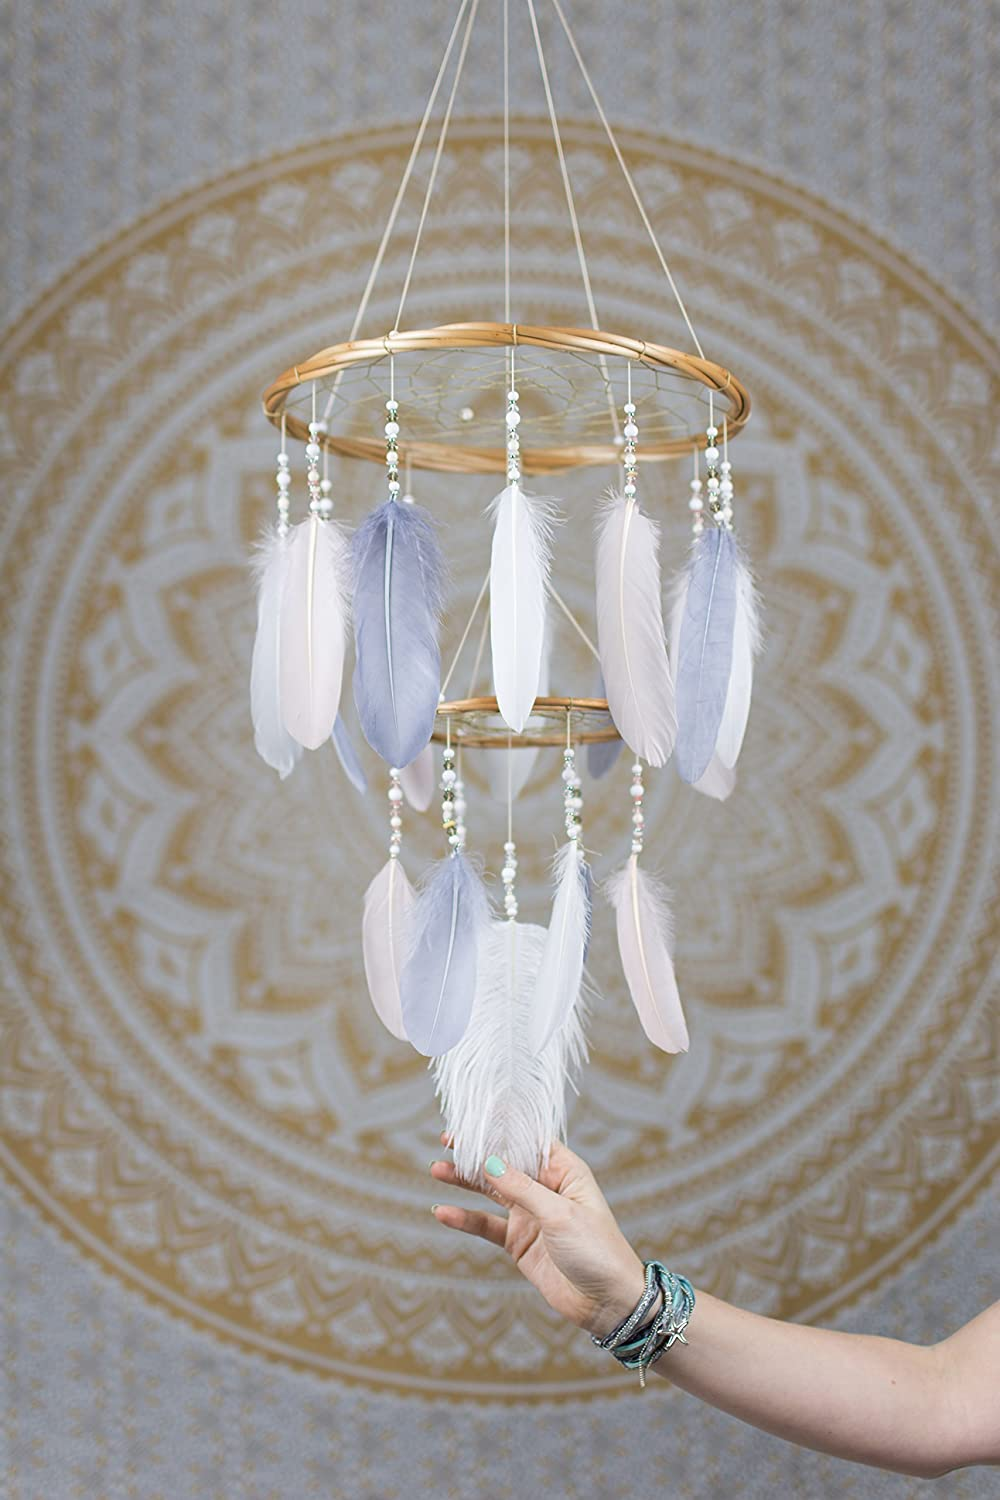 Handmade Dream Catcher Mobile Gift Perfect for Baby Showers and Nursery Gifts Dreamcatcher Mobile Chandelier Blush Pink Grey and White